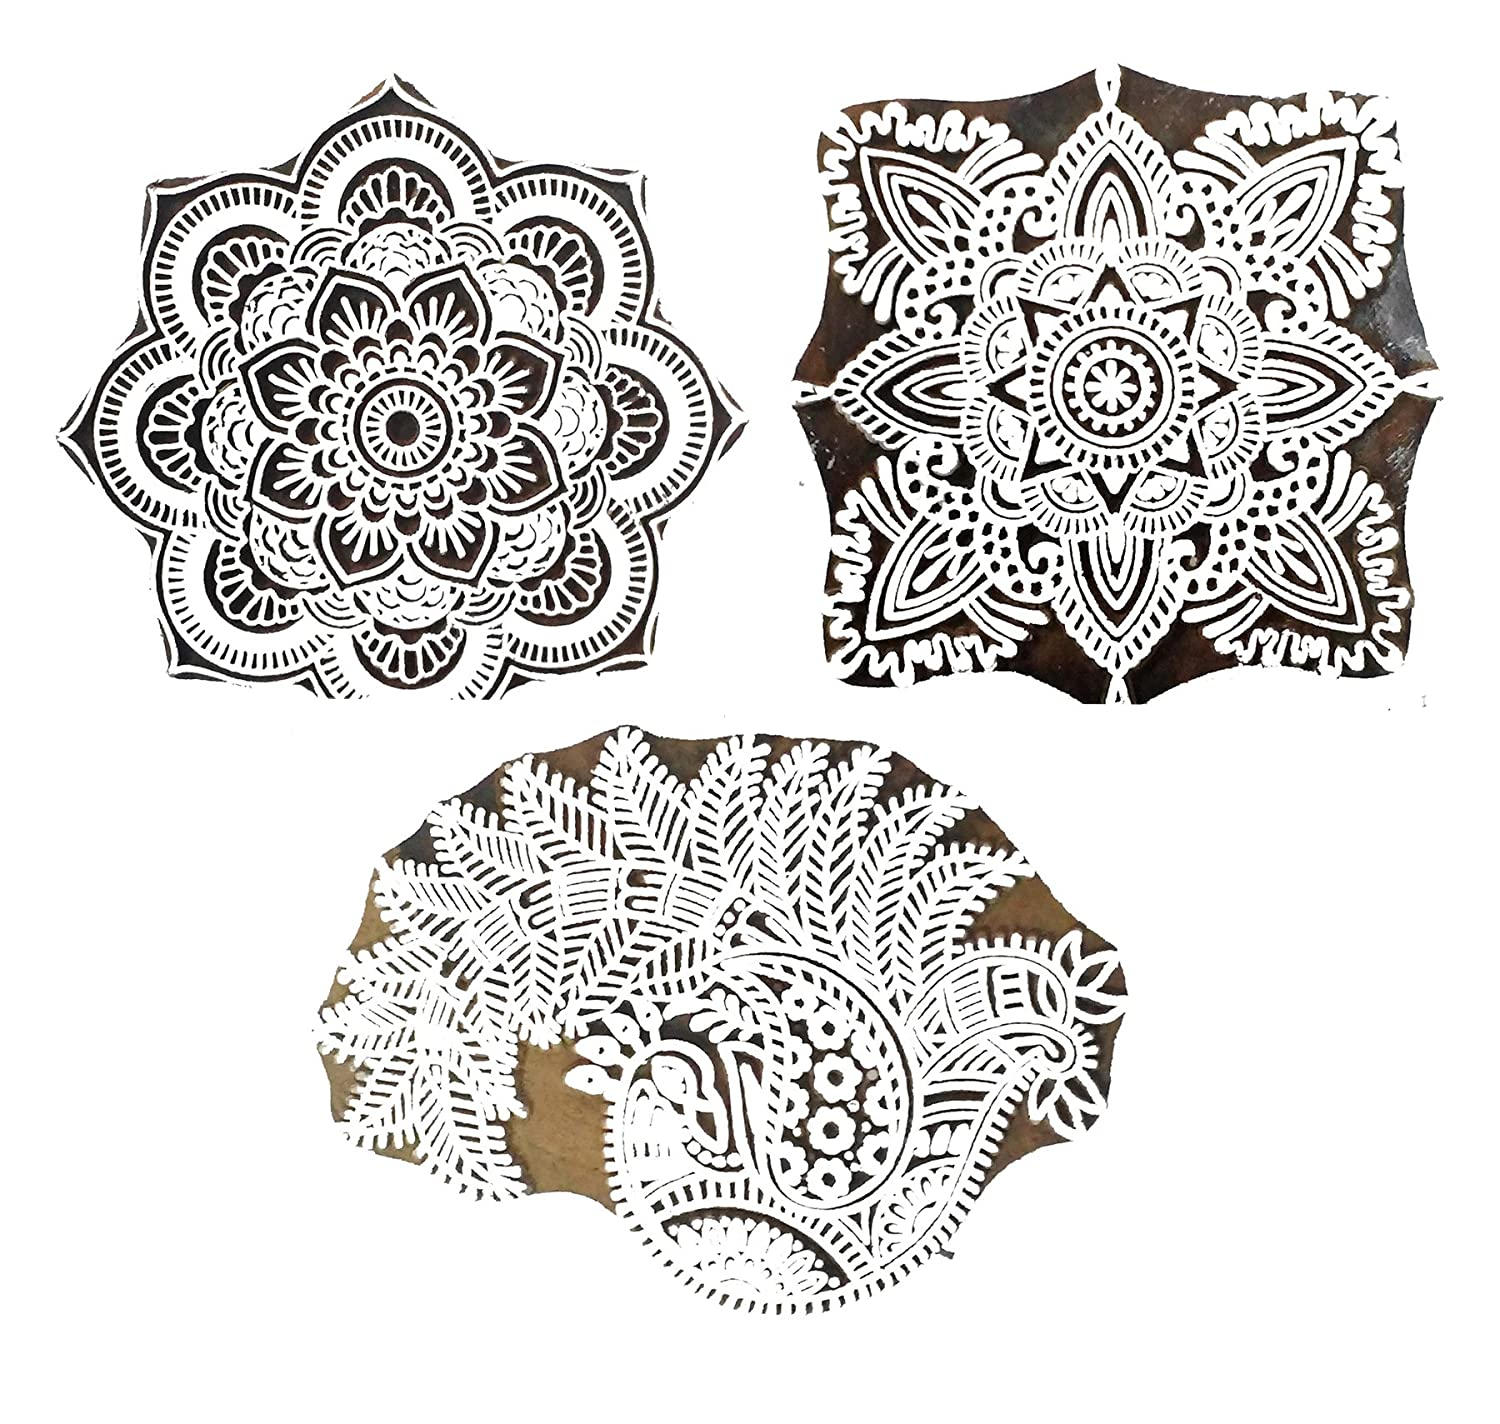 Round Flower Wood  Clay Pottery Soap Stamp Hand Carved Fabric Henna Textile Indian Print Block